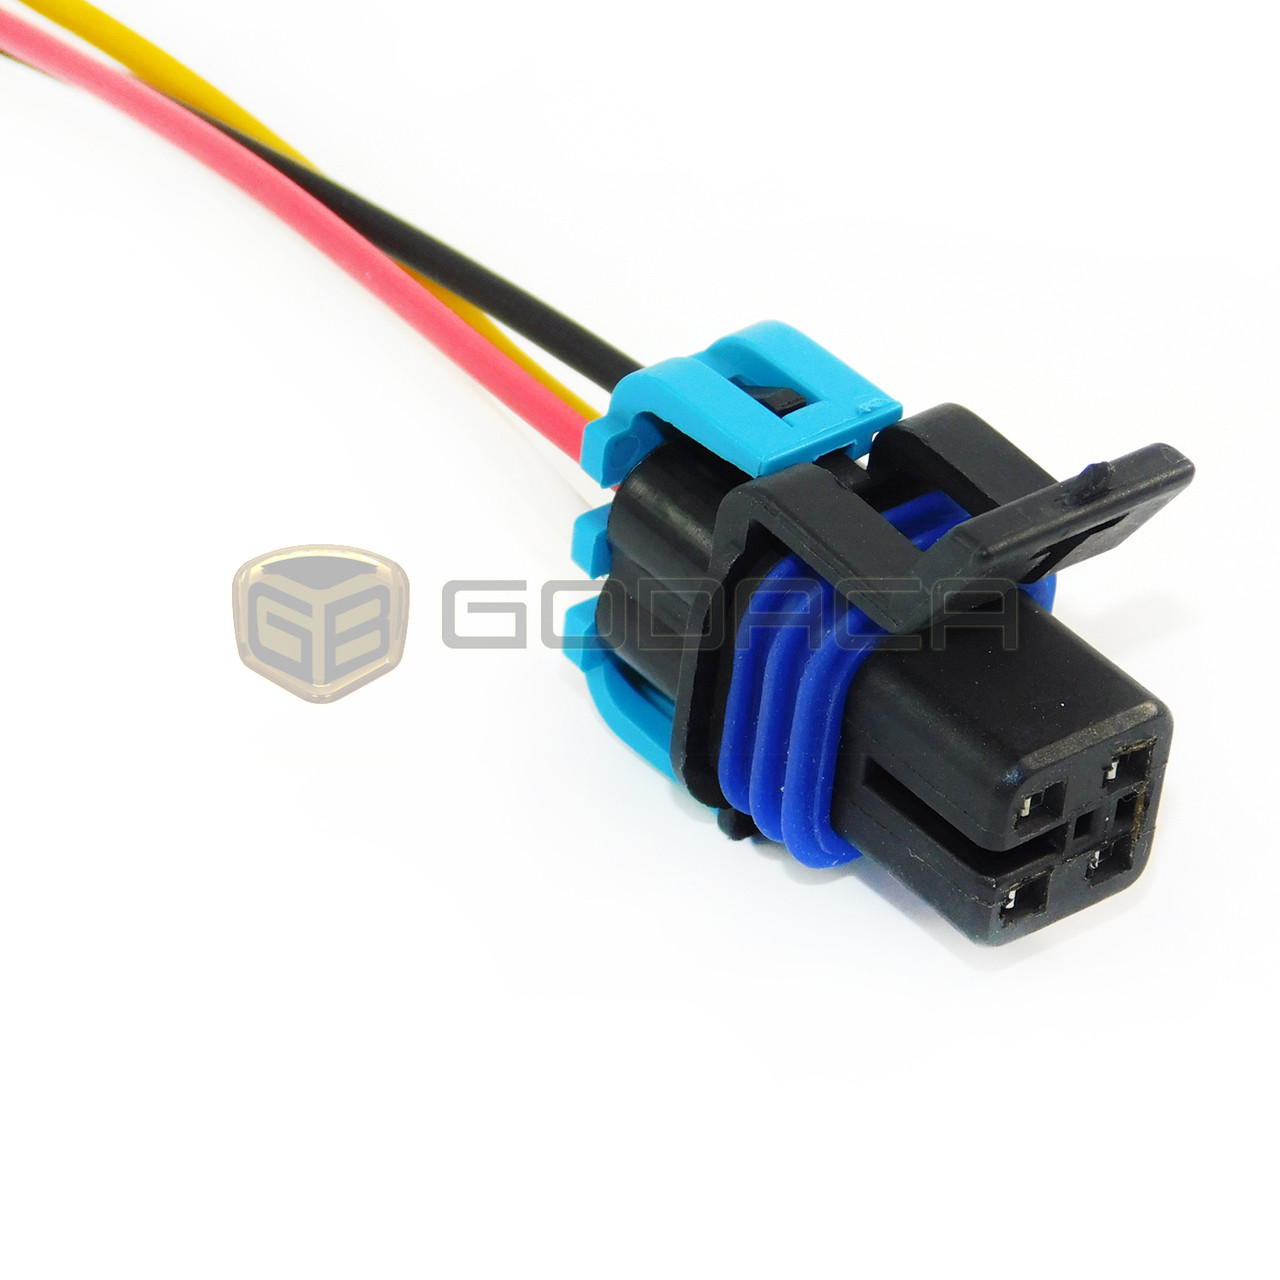 hight resolution of connector for fuel pump 4 way female wiring harness gm chevrolet oxygen 12160482 godaca llc